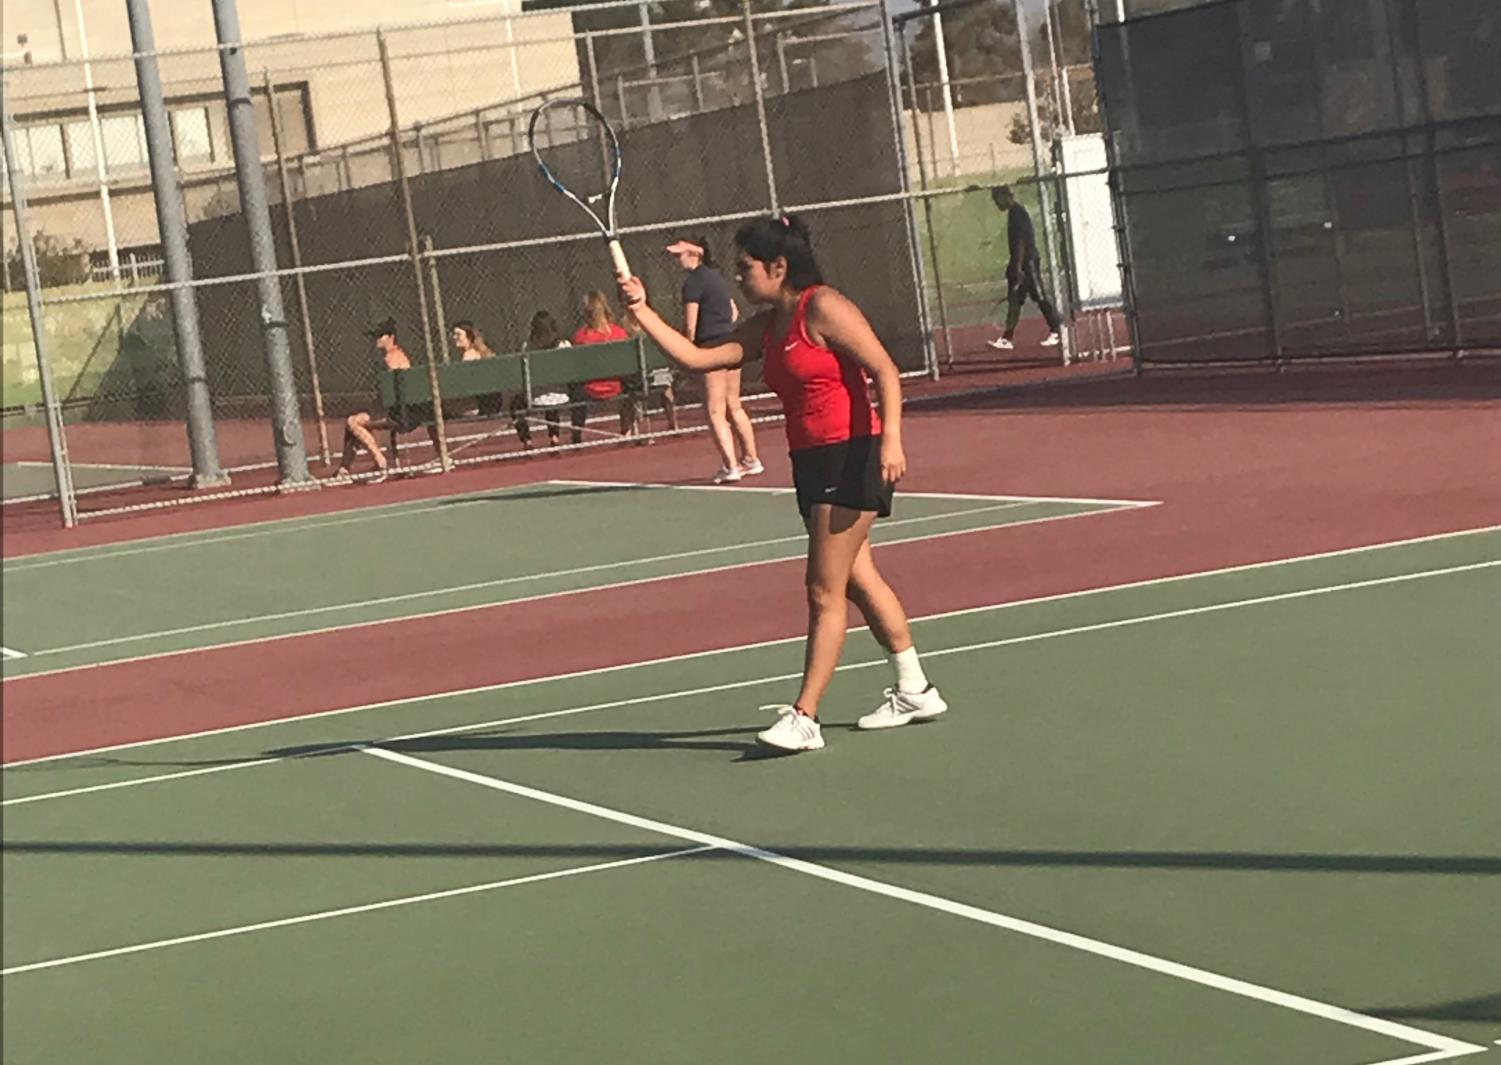 Brittany Aguilar giving one of her many winning serves.